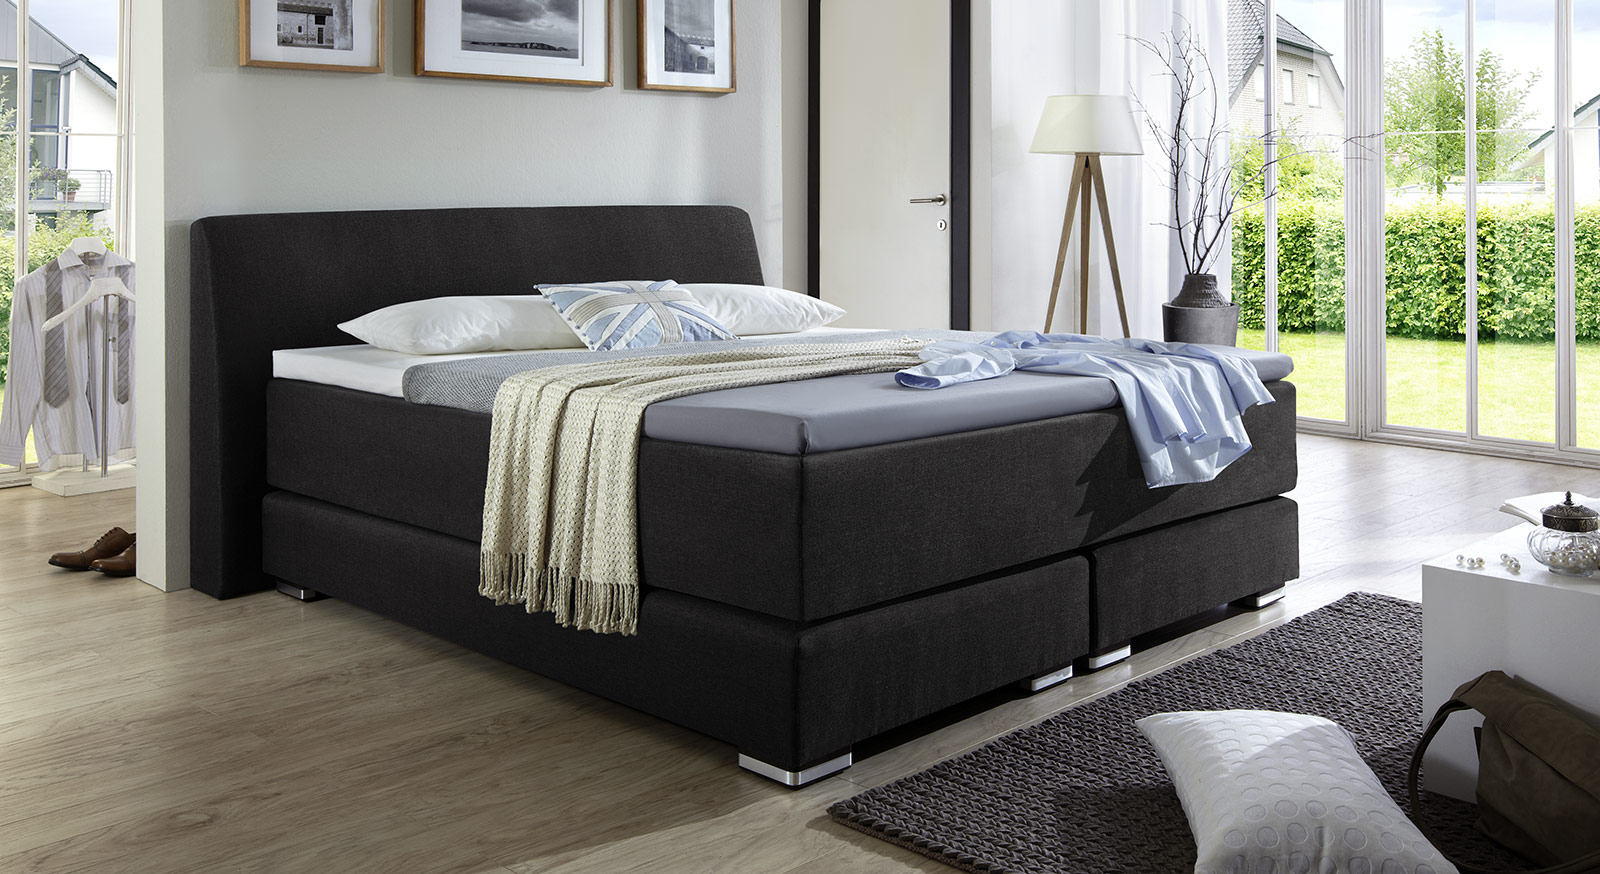 boxspringbetten im test boxspringbetten im test hause deko ideen boxspringbetten im test m bel. Black Bedroom Furniture Sets. Home Design Ideas